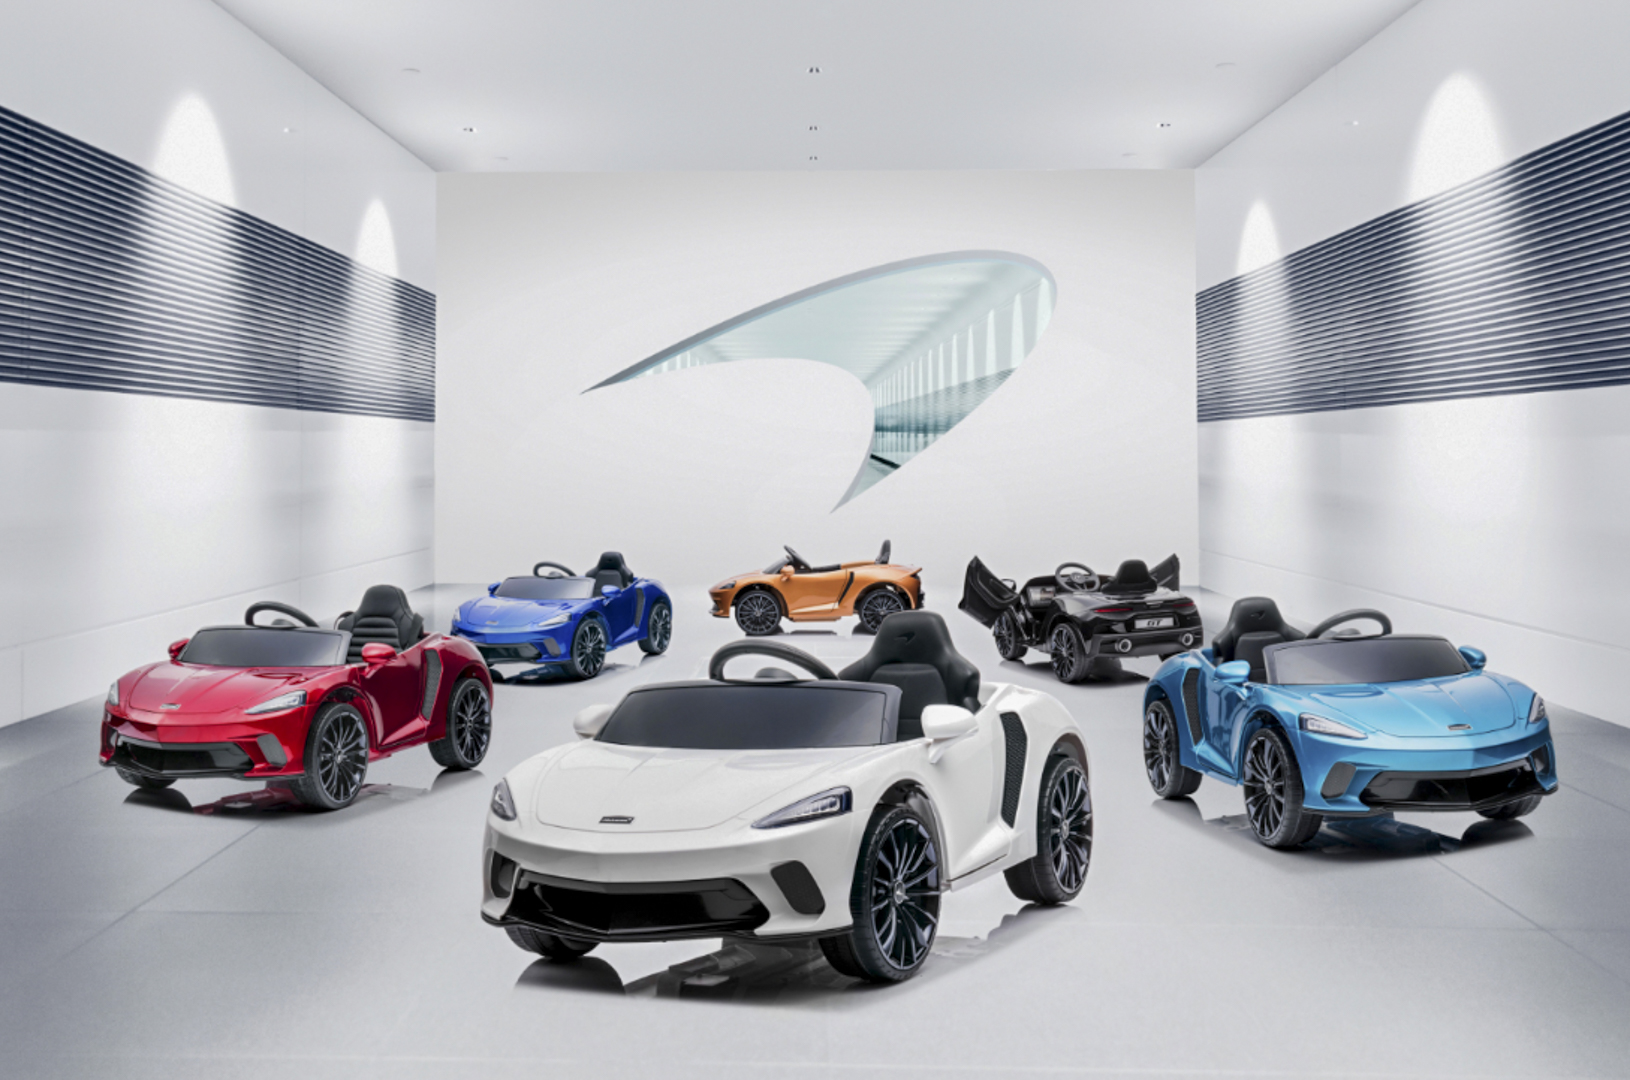 The New McLaren GT Ride-On: The Talk of the Playground